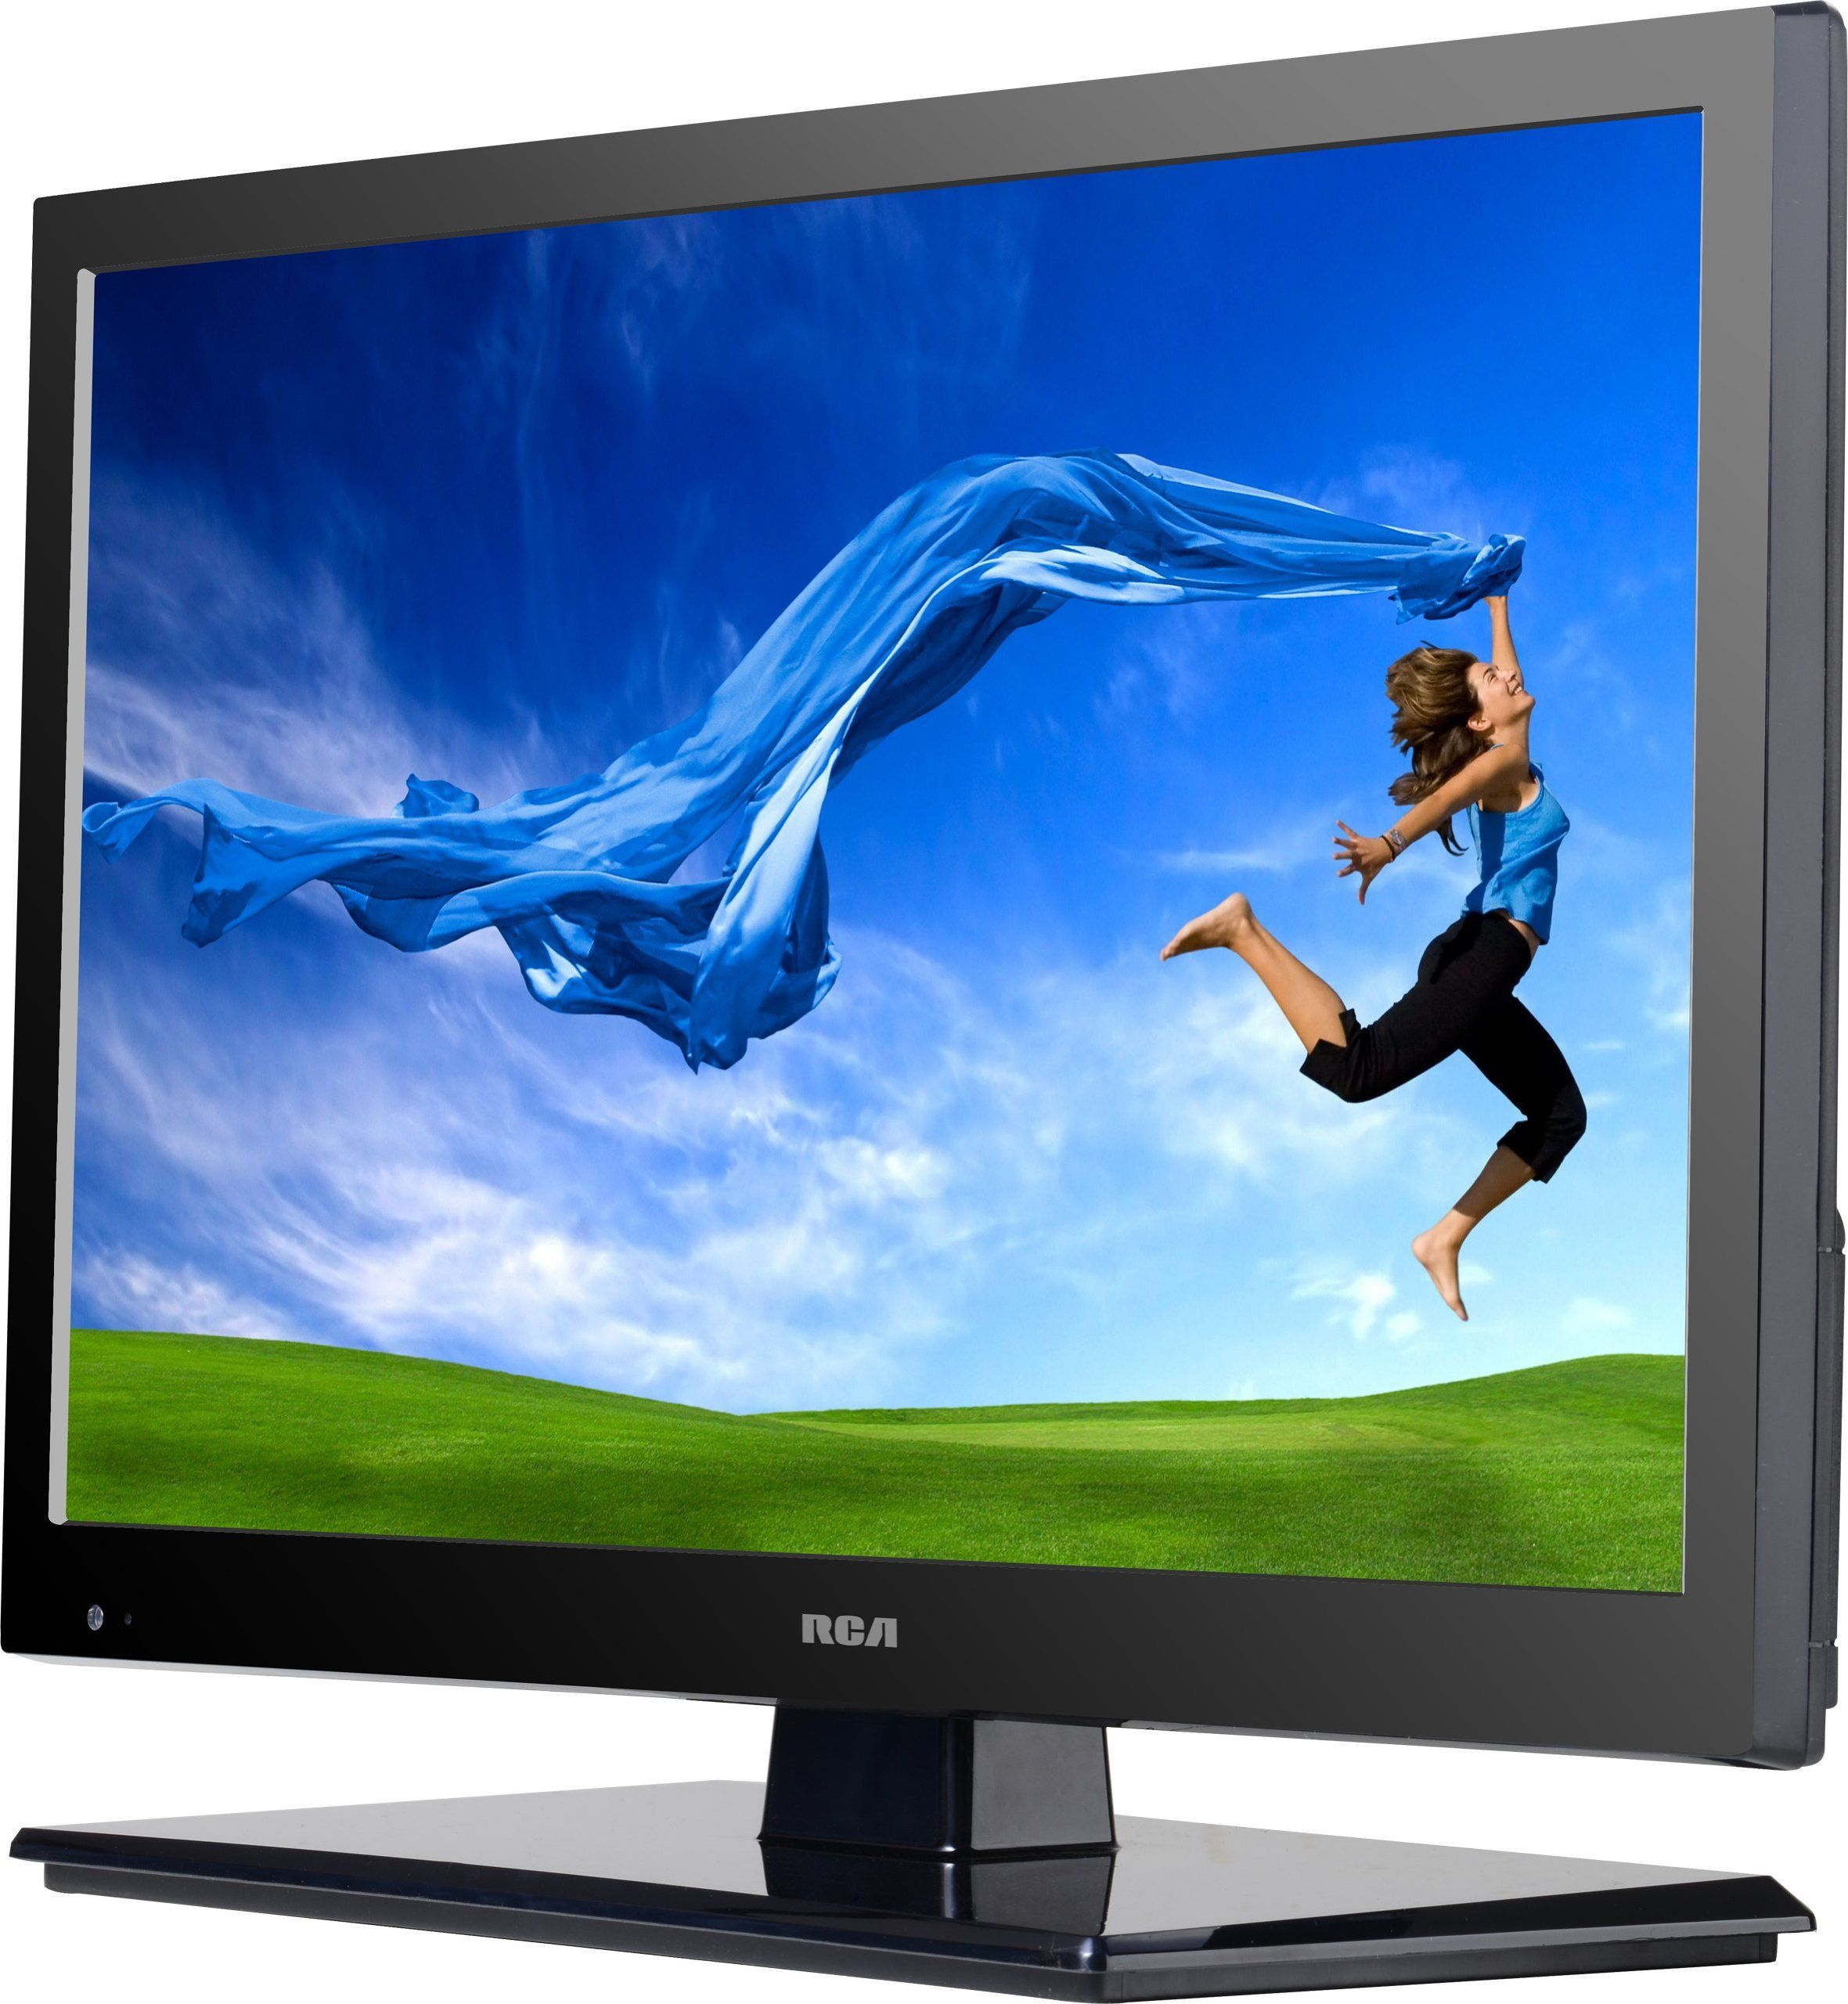 Rca Decg22dr 22 Inch Class Led Full Hdtv Ac Dc Power Dvd Combo Monitor With Display